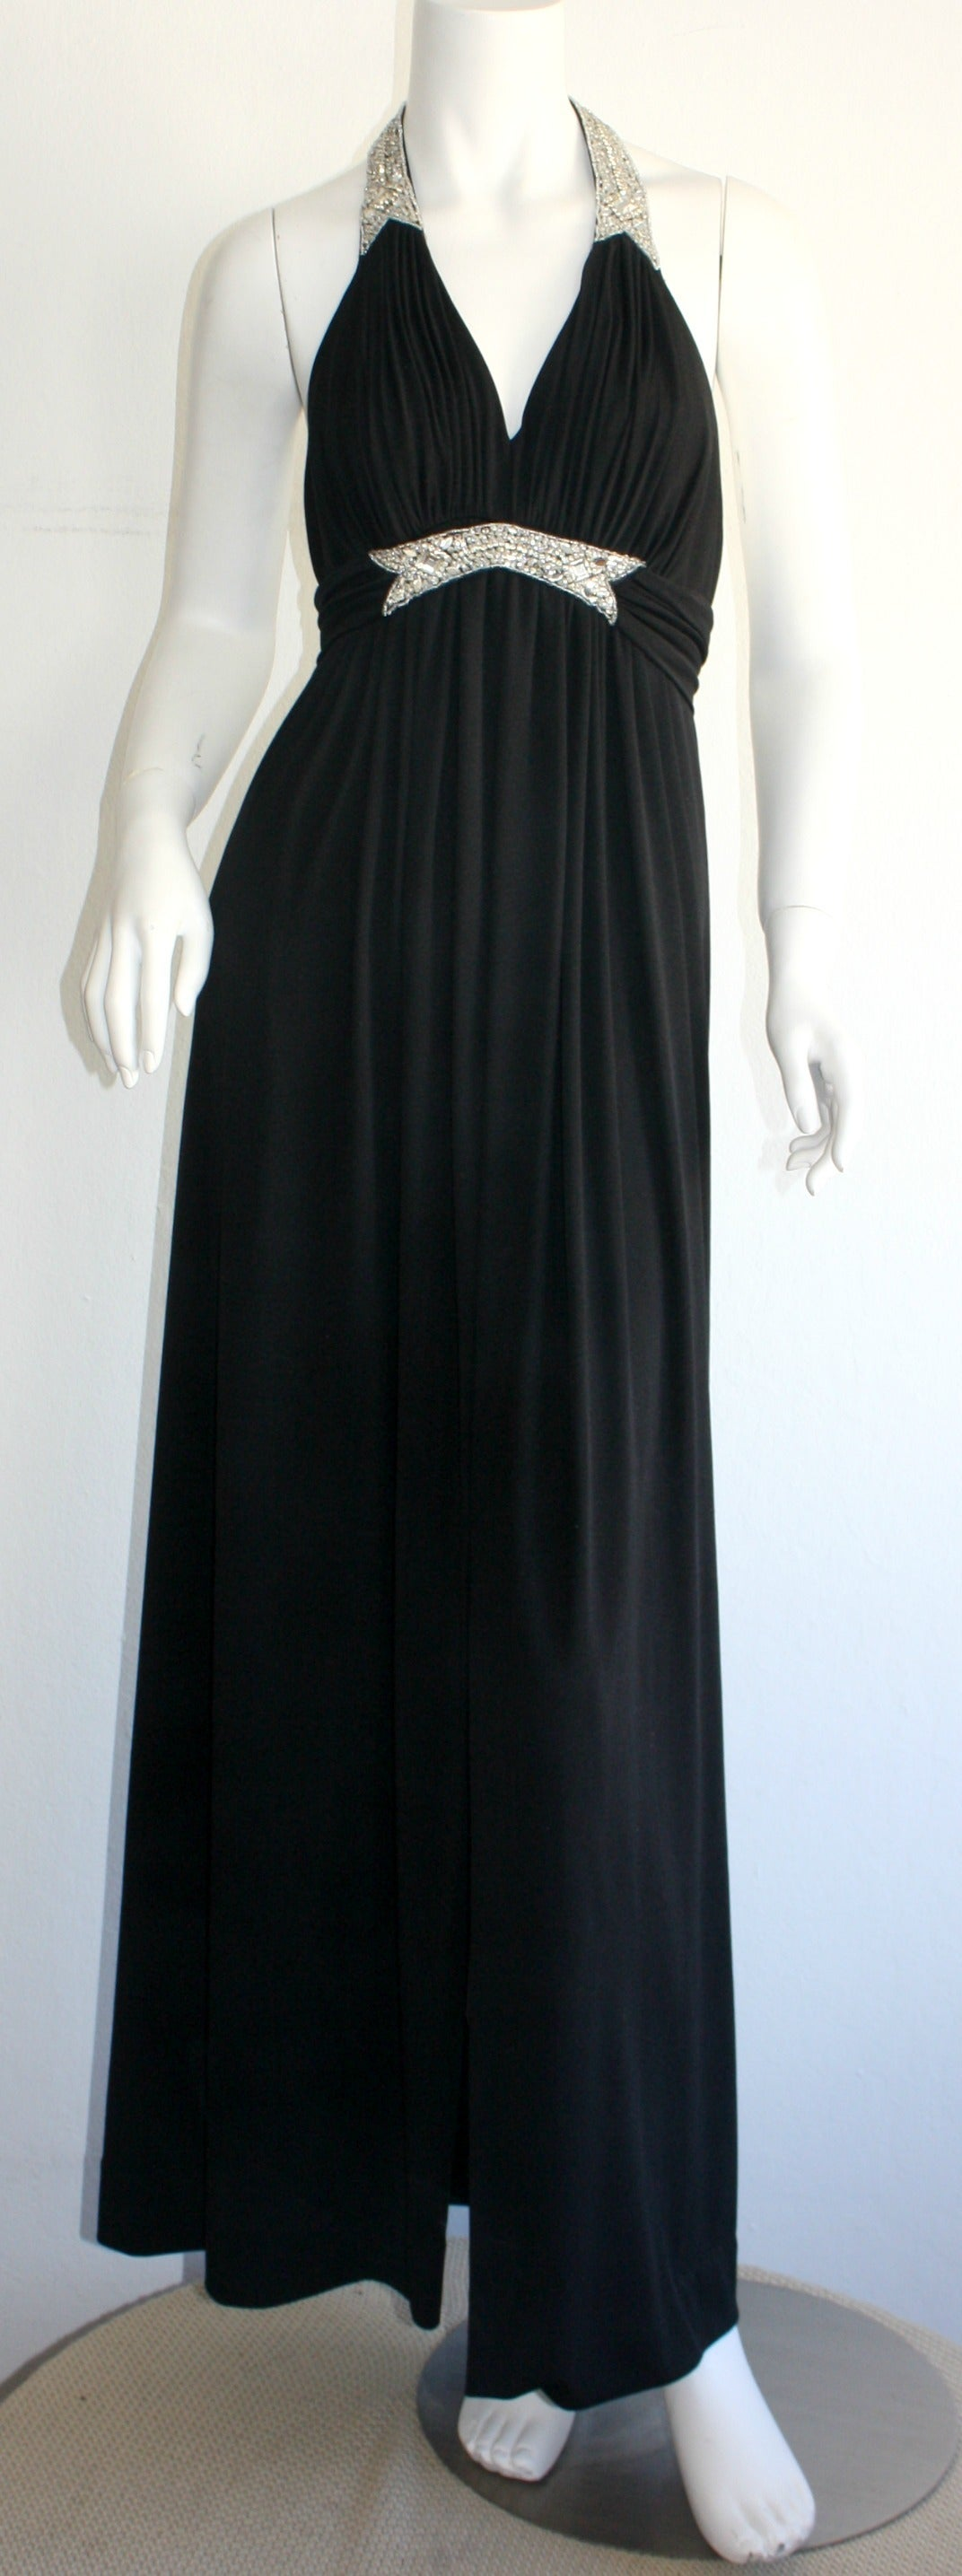 Stunning 1970s Vintage Victoria Royal Black Halter Diamanté Jersey Dress In Excellent Condition For Sale In San Francisco, CA